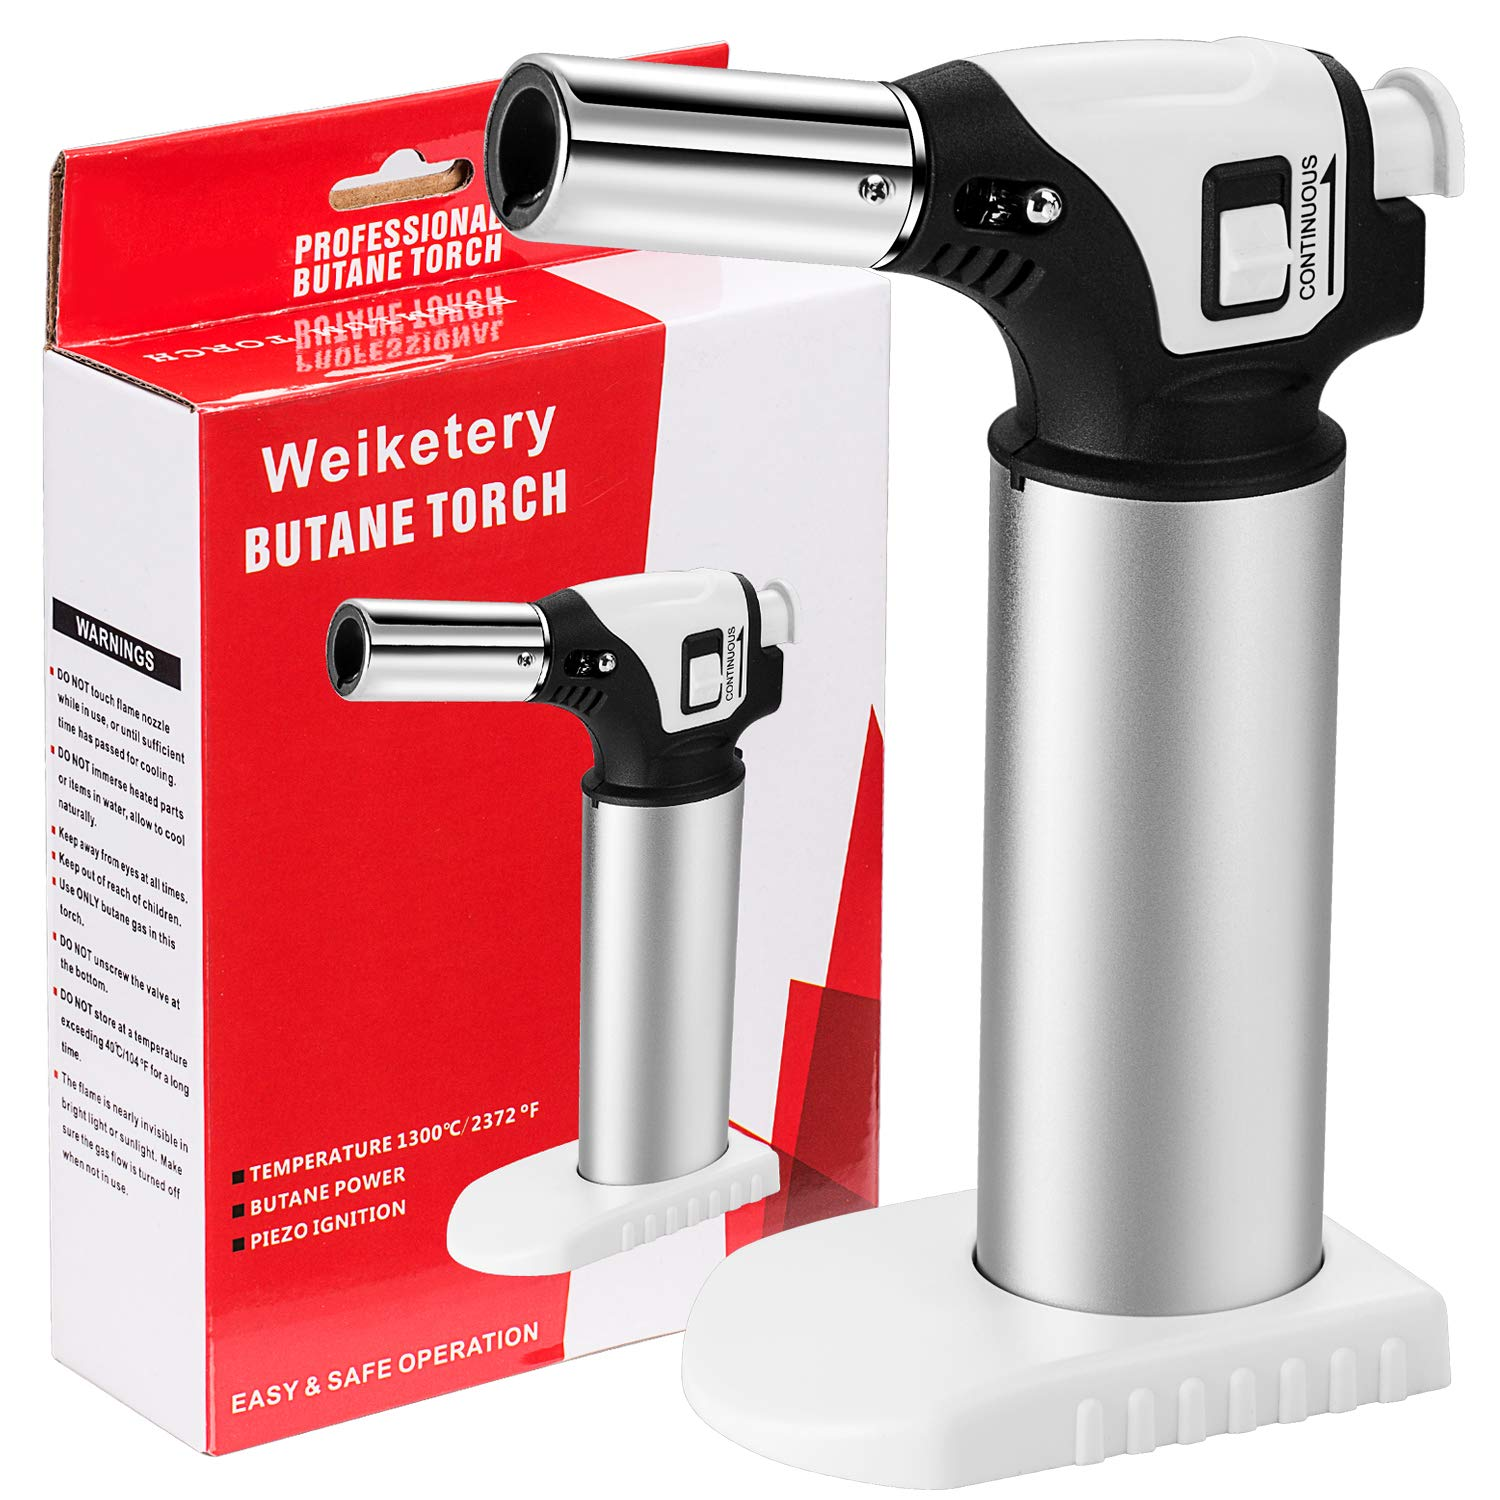 Blow Torch, Professional Kitchen Culinary Torch Lighter, Mini Chef Cooking Creme Brulee Torch, Butane Torch with Refillable Safety Lock & Adjustable Flame for Meat, Baking BBQ (Butane not included)